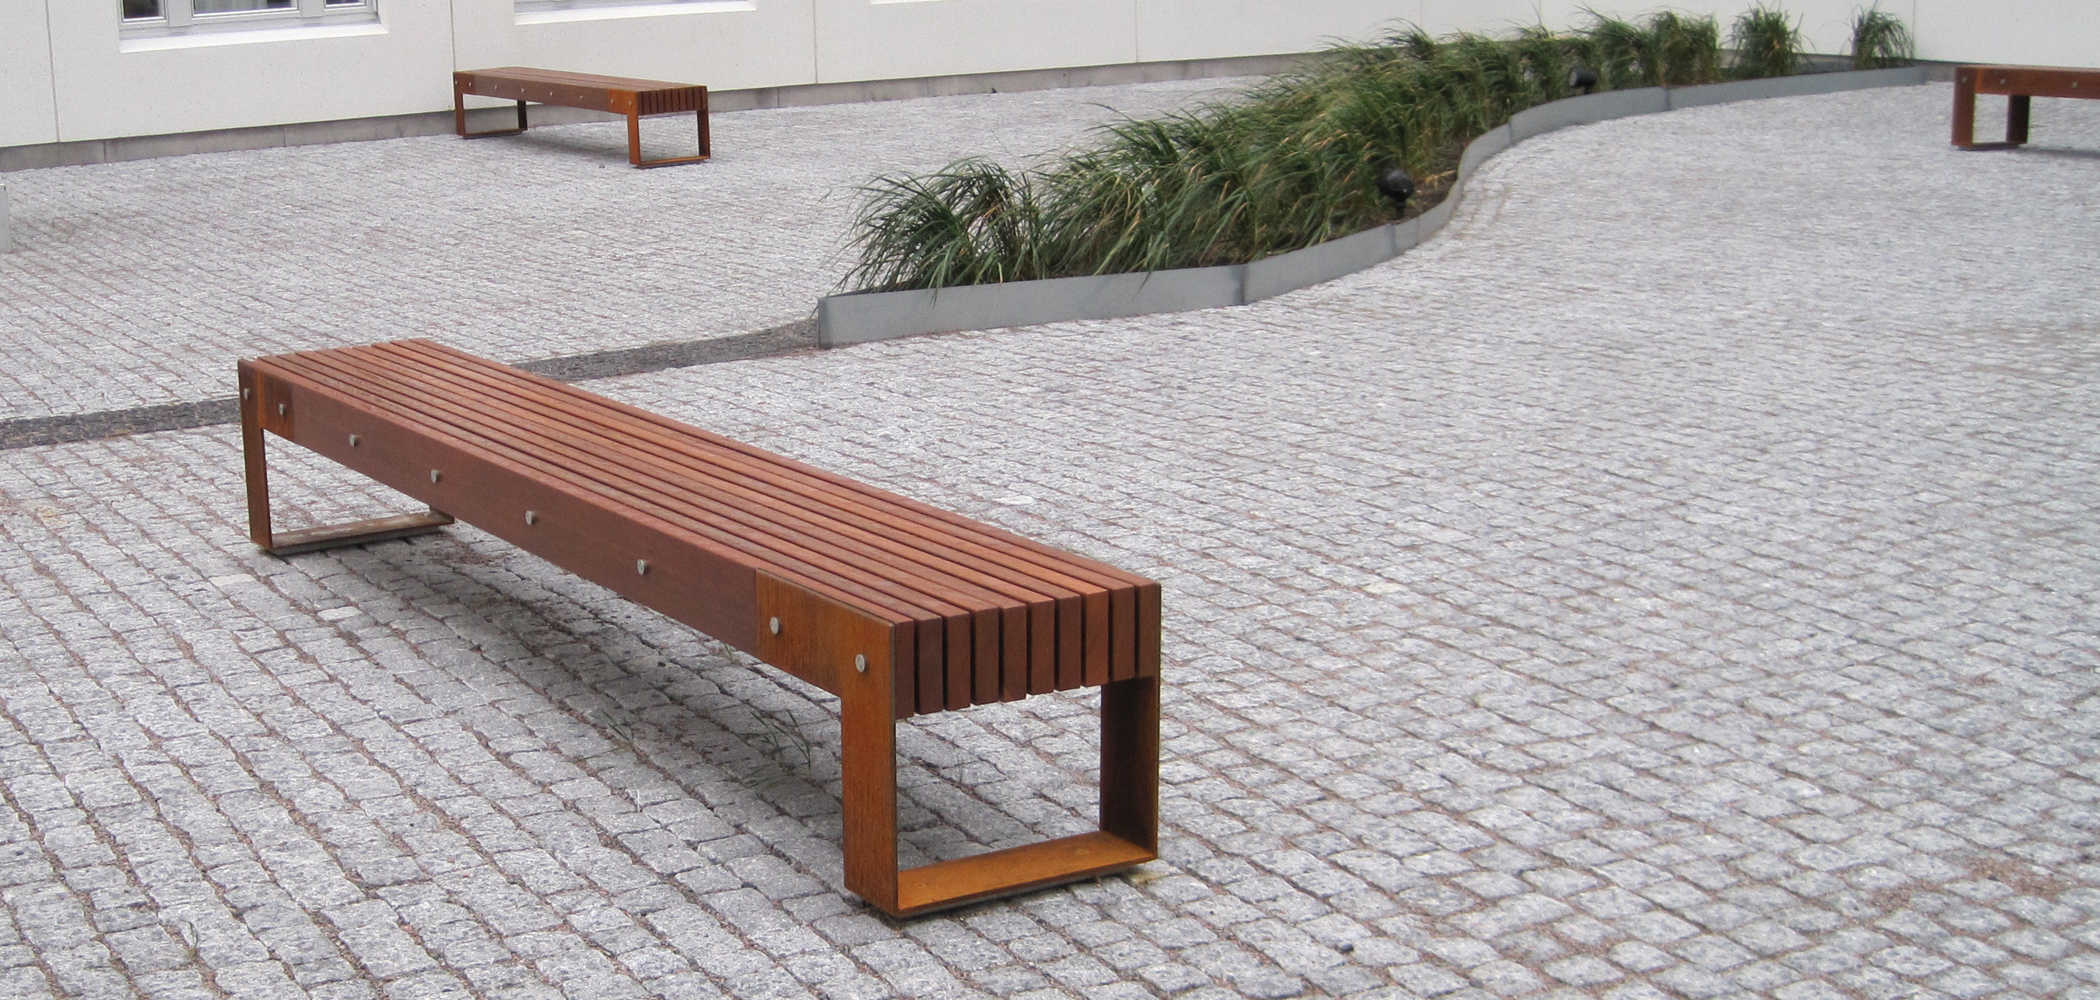 Wooden Expo Stands For : Benches ideas lt metalco